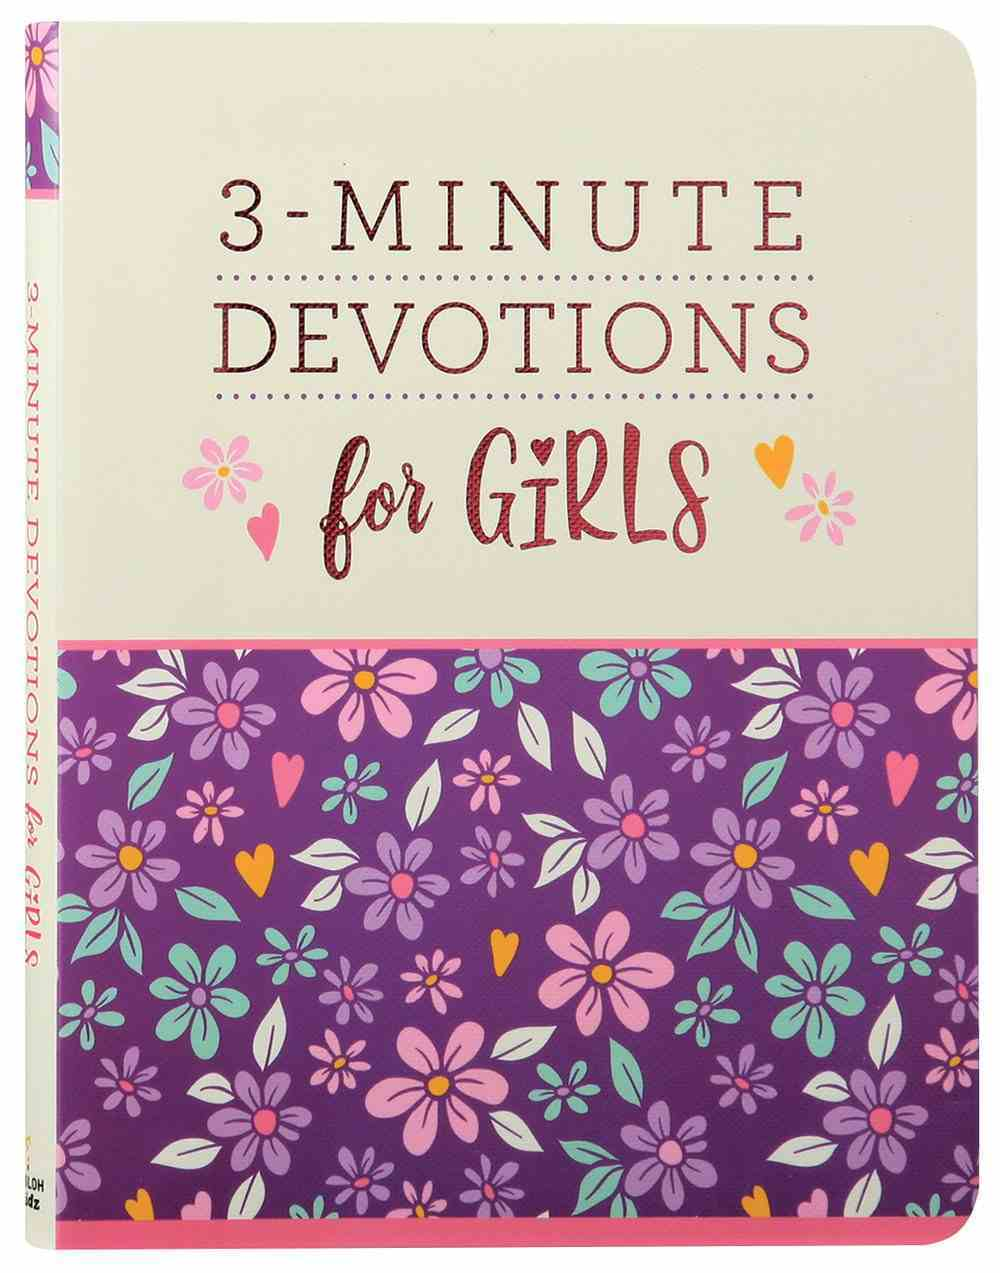 3-Minute Devotions For Girls (3 Minute Devotions Series) Paperback